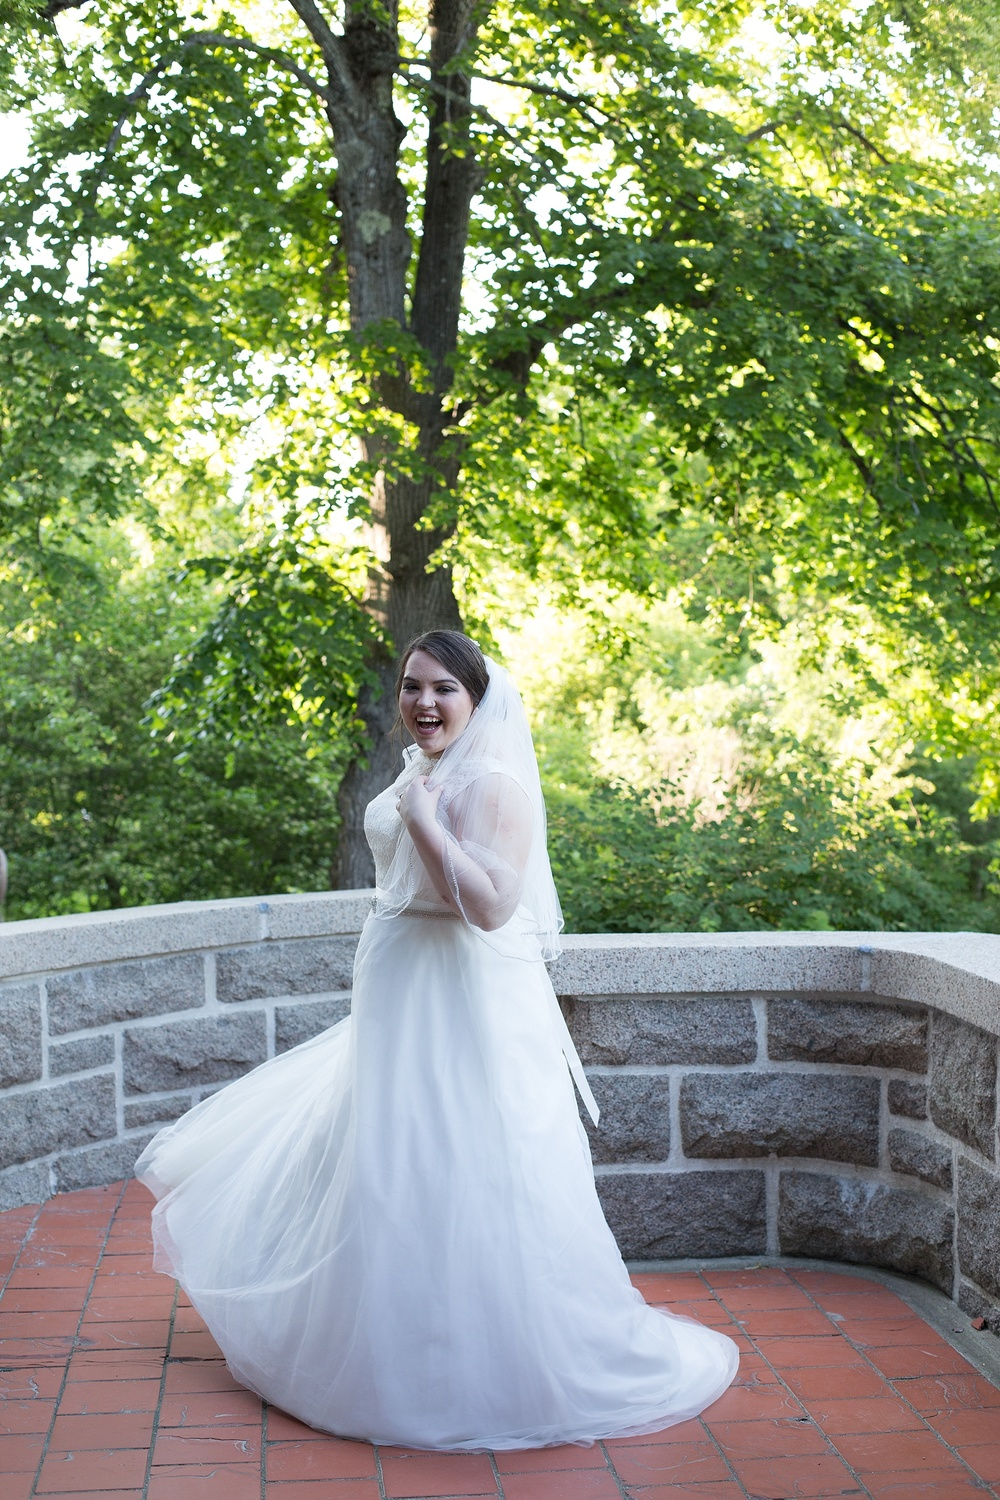 Bride twirling in gown